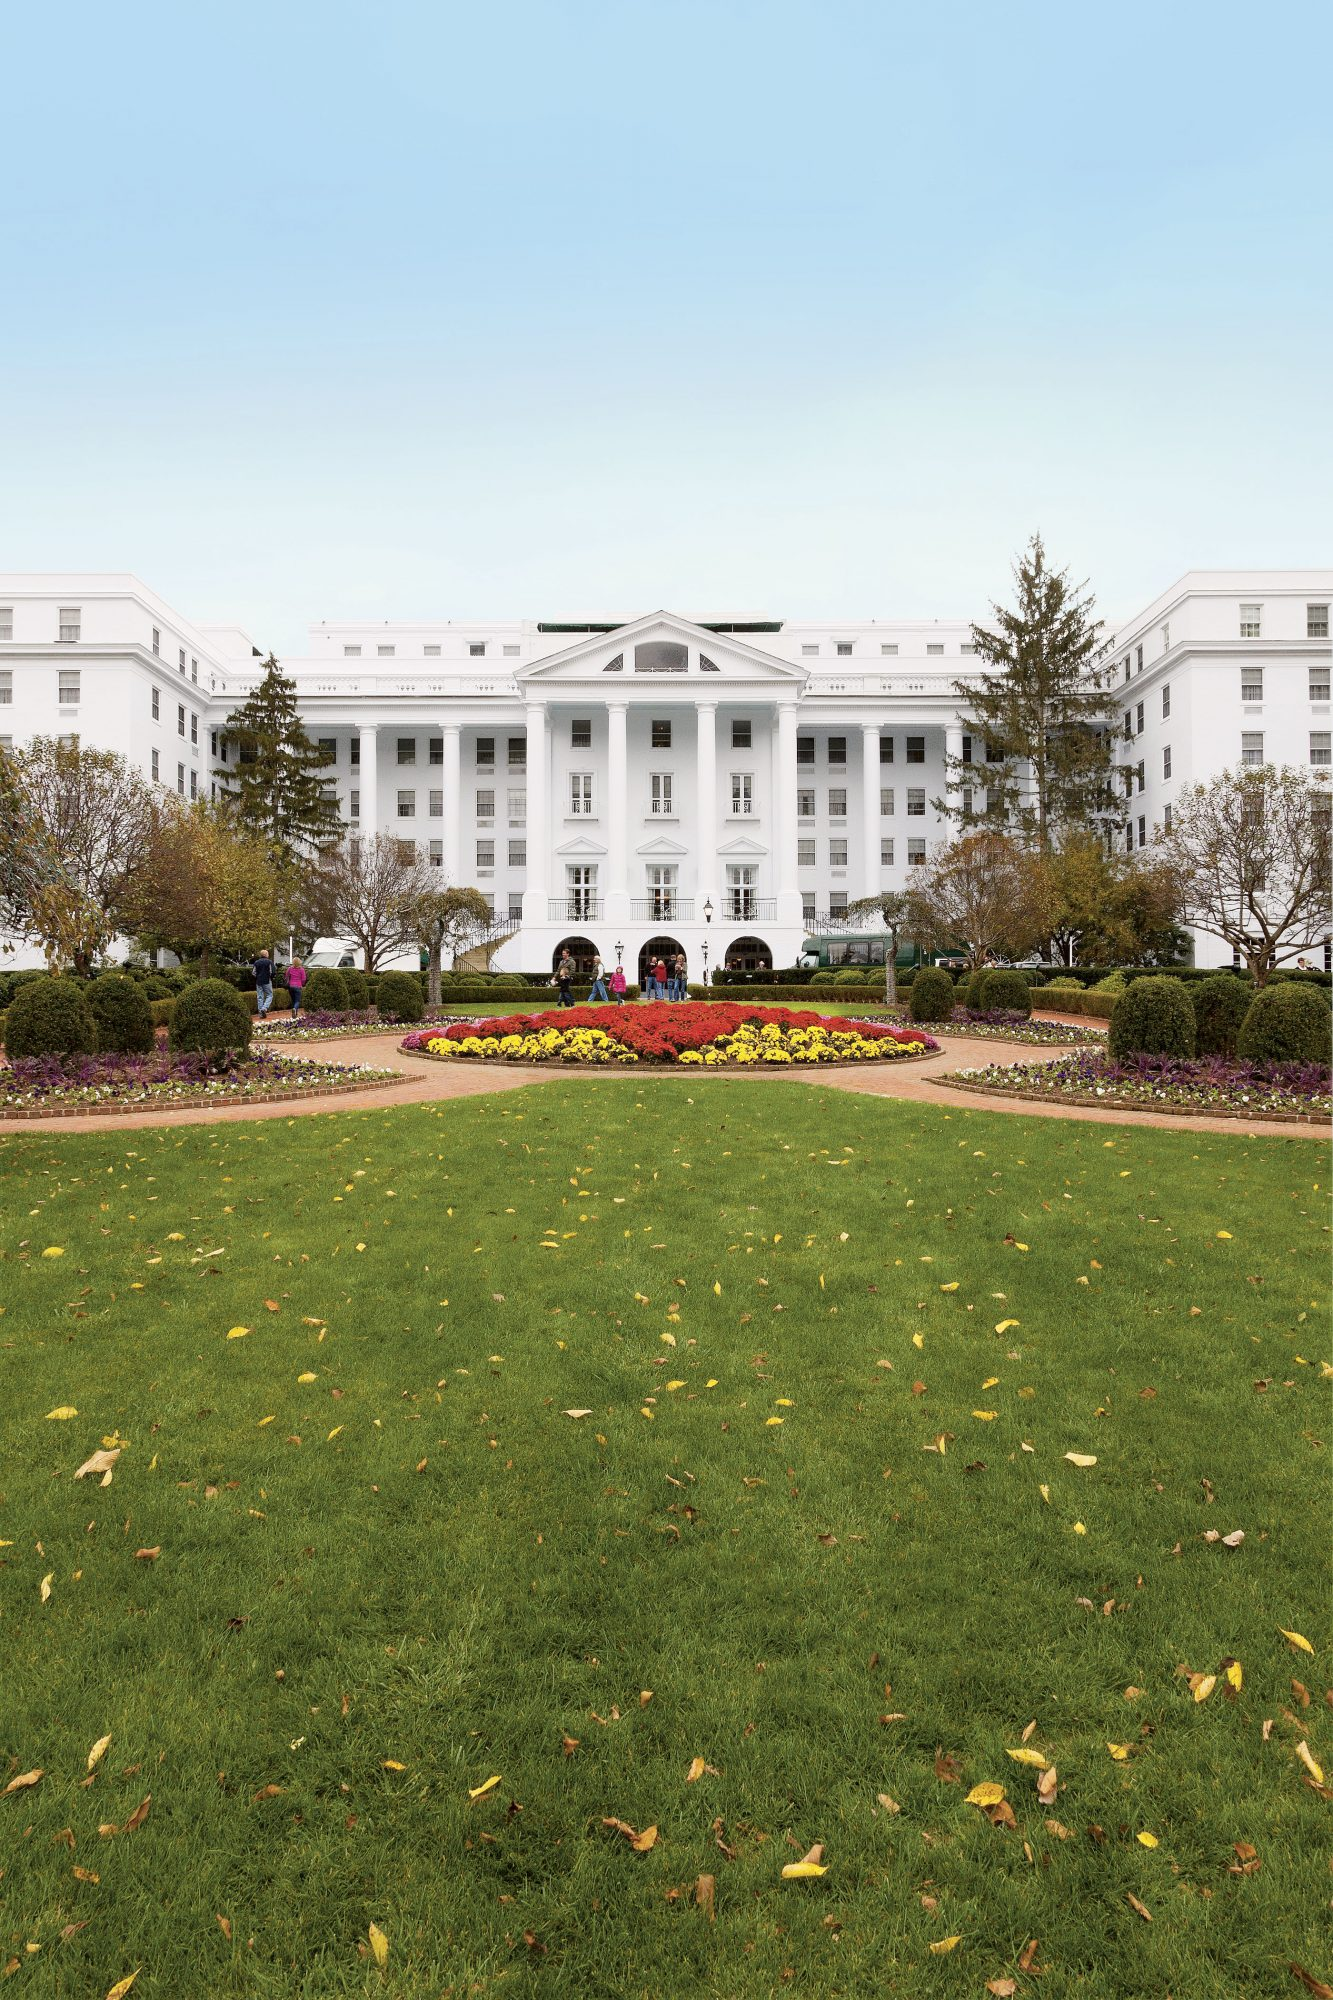 Book a stay at The Greenbrier